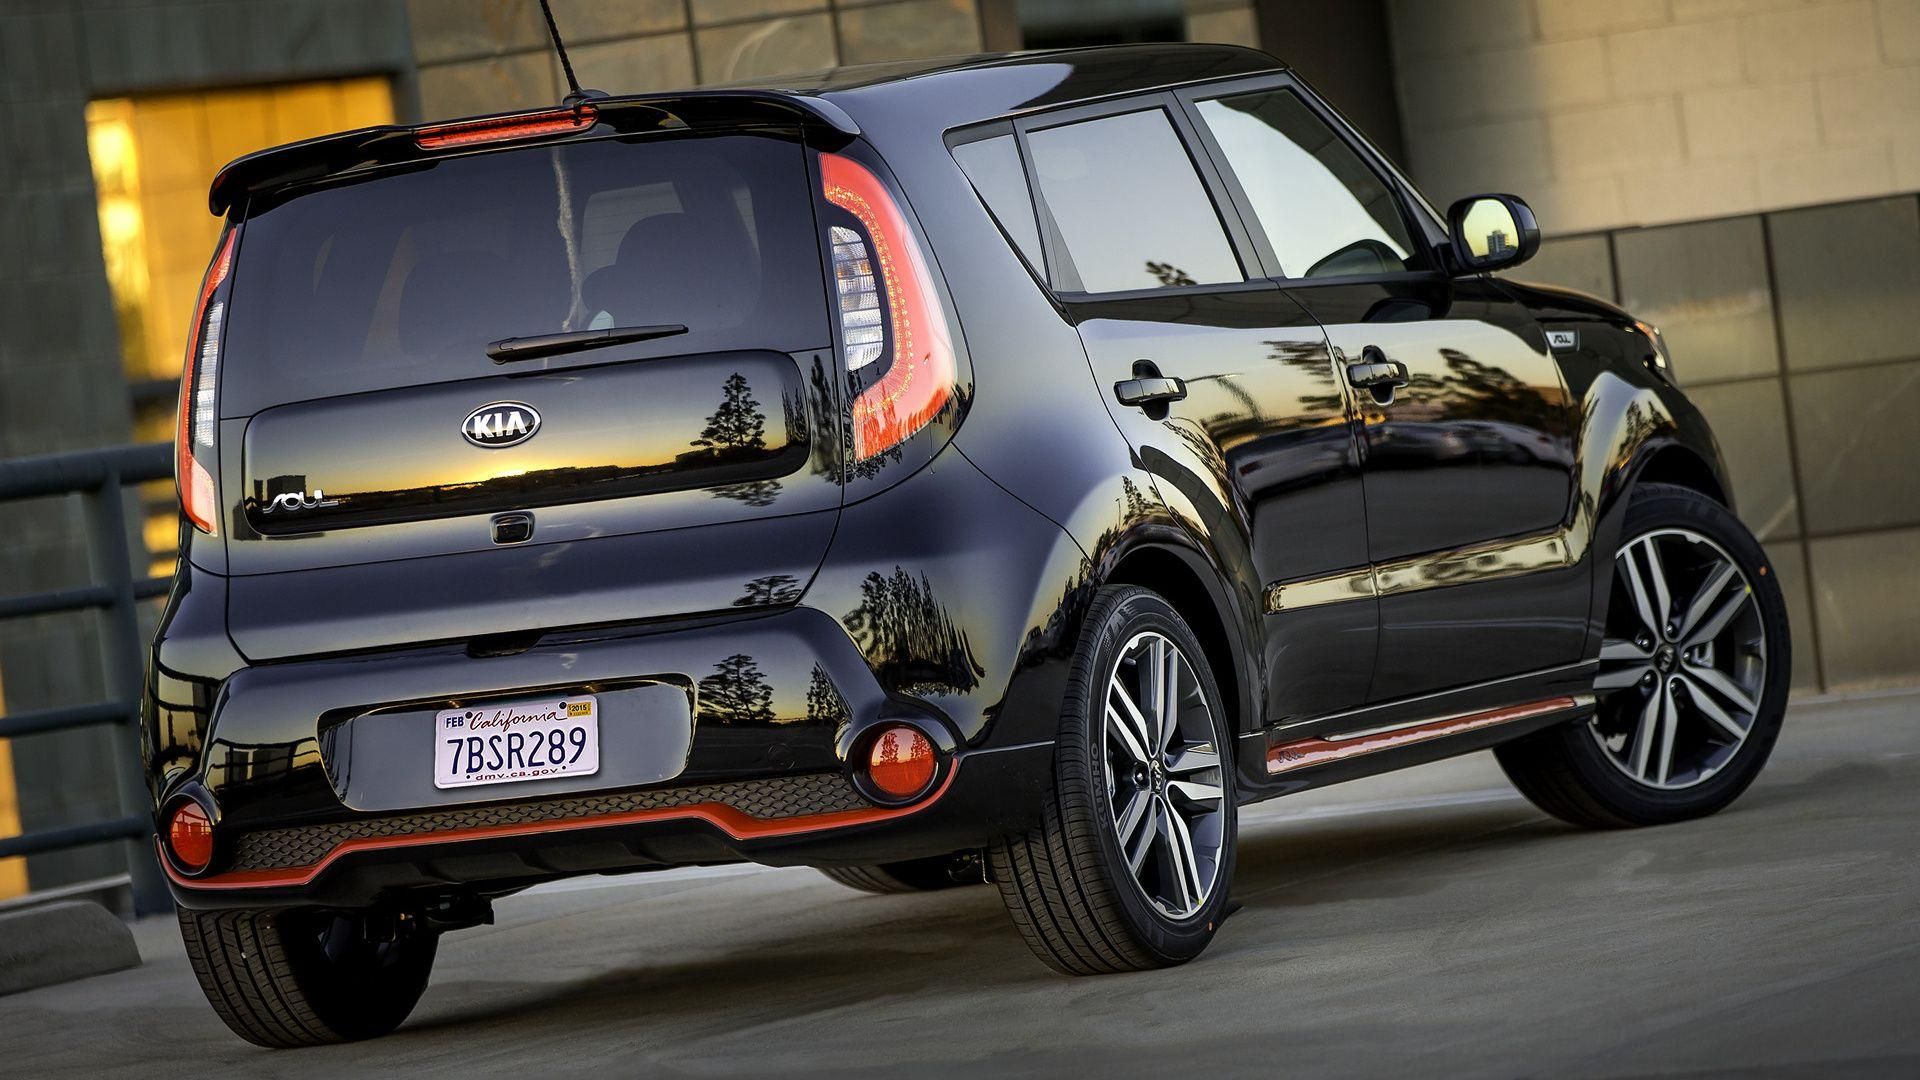 Kia Soul Red Zone (2013) Wallpapers and HD Images - Car Pixel